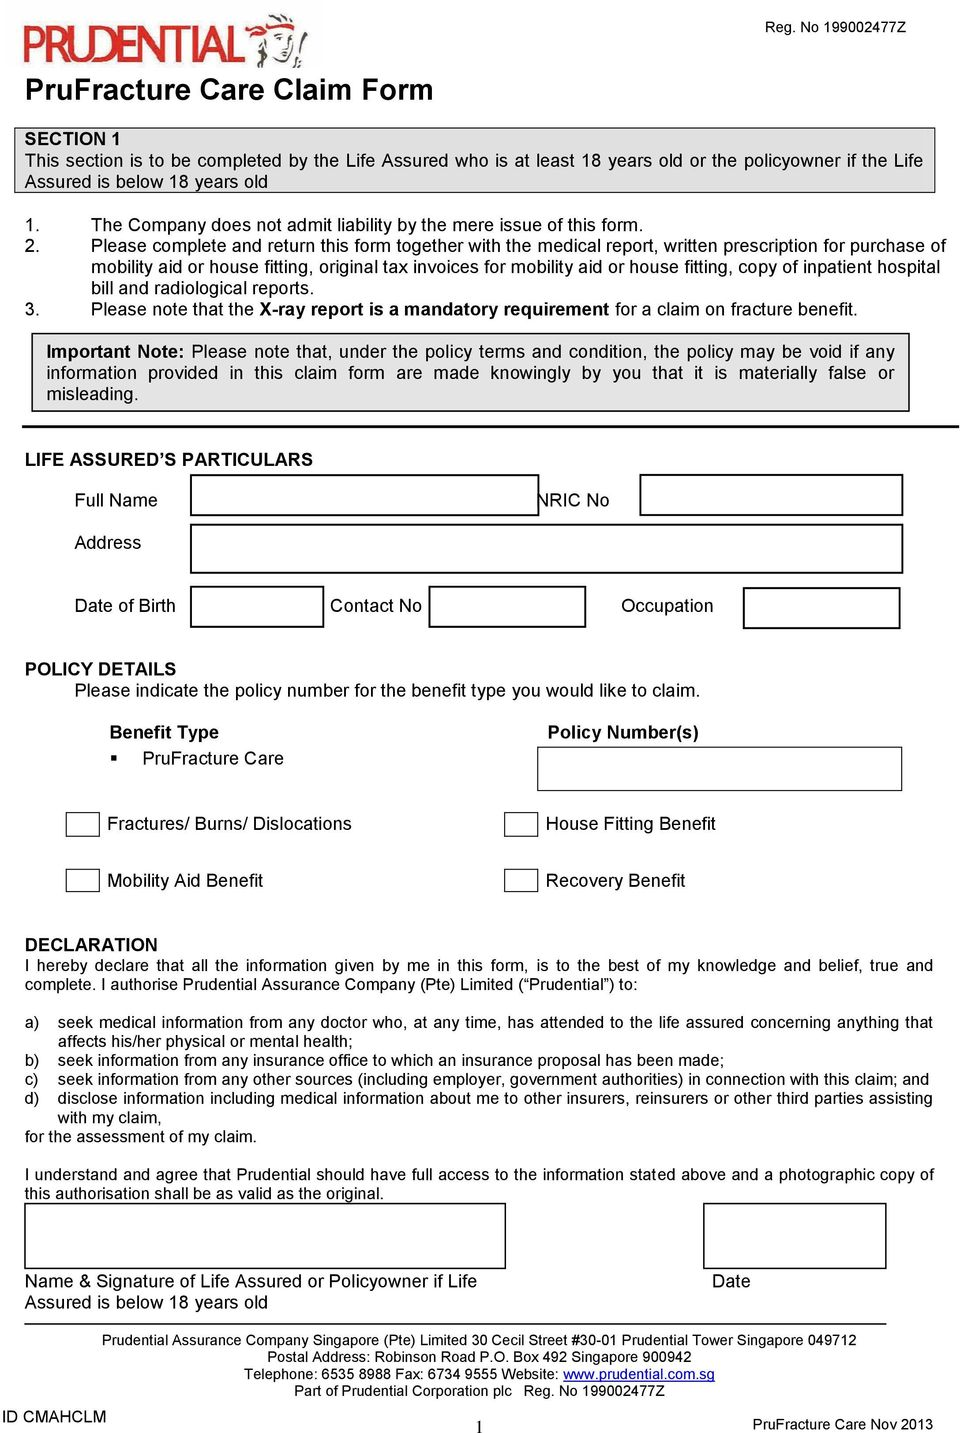 Please complete and return this form together with the medical report, written prescription for purchase of mobility aid or house fitting, original tax invoices for mobility aid or house fitting,